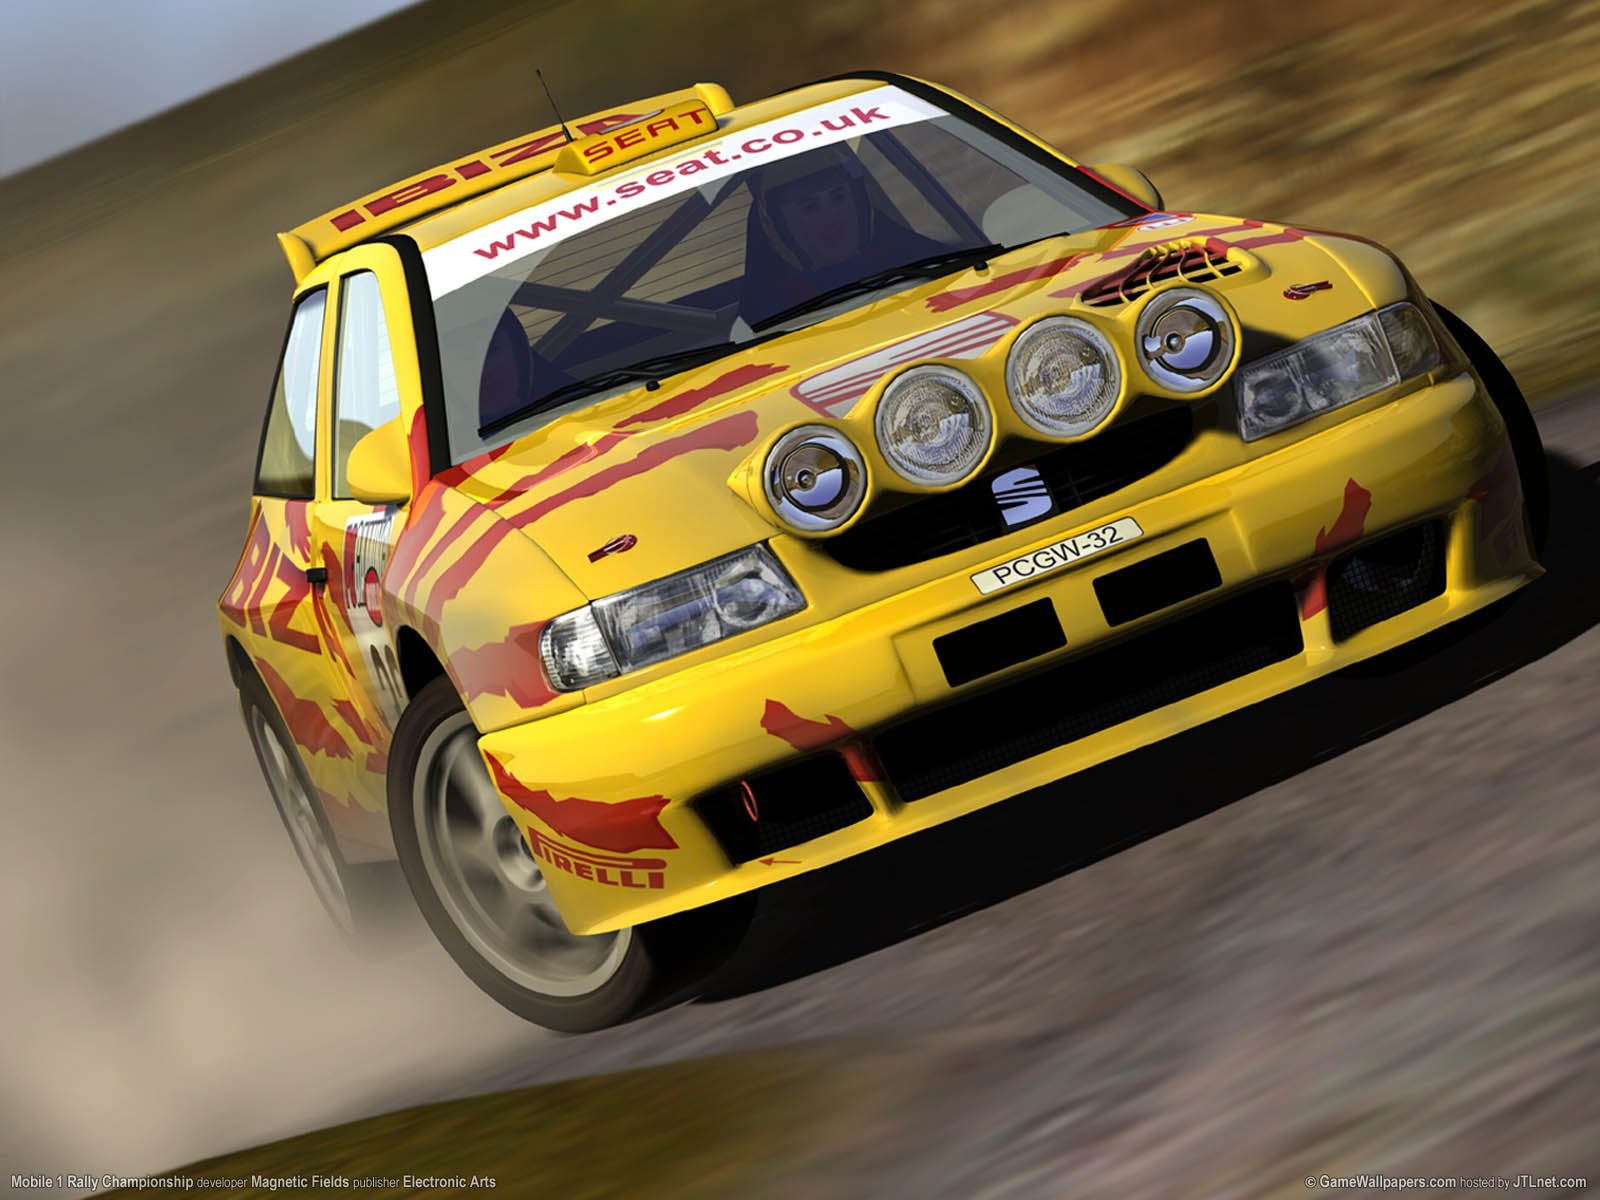 Mobile 1 Rally Championshipνmmer=04 achtergrond  1600x1200